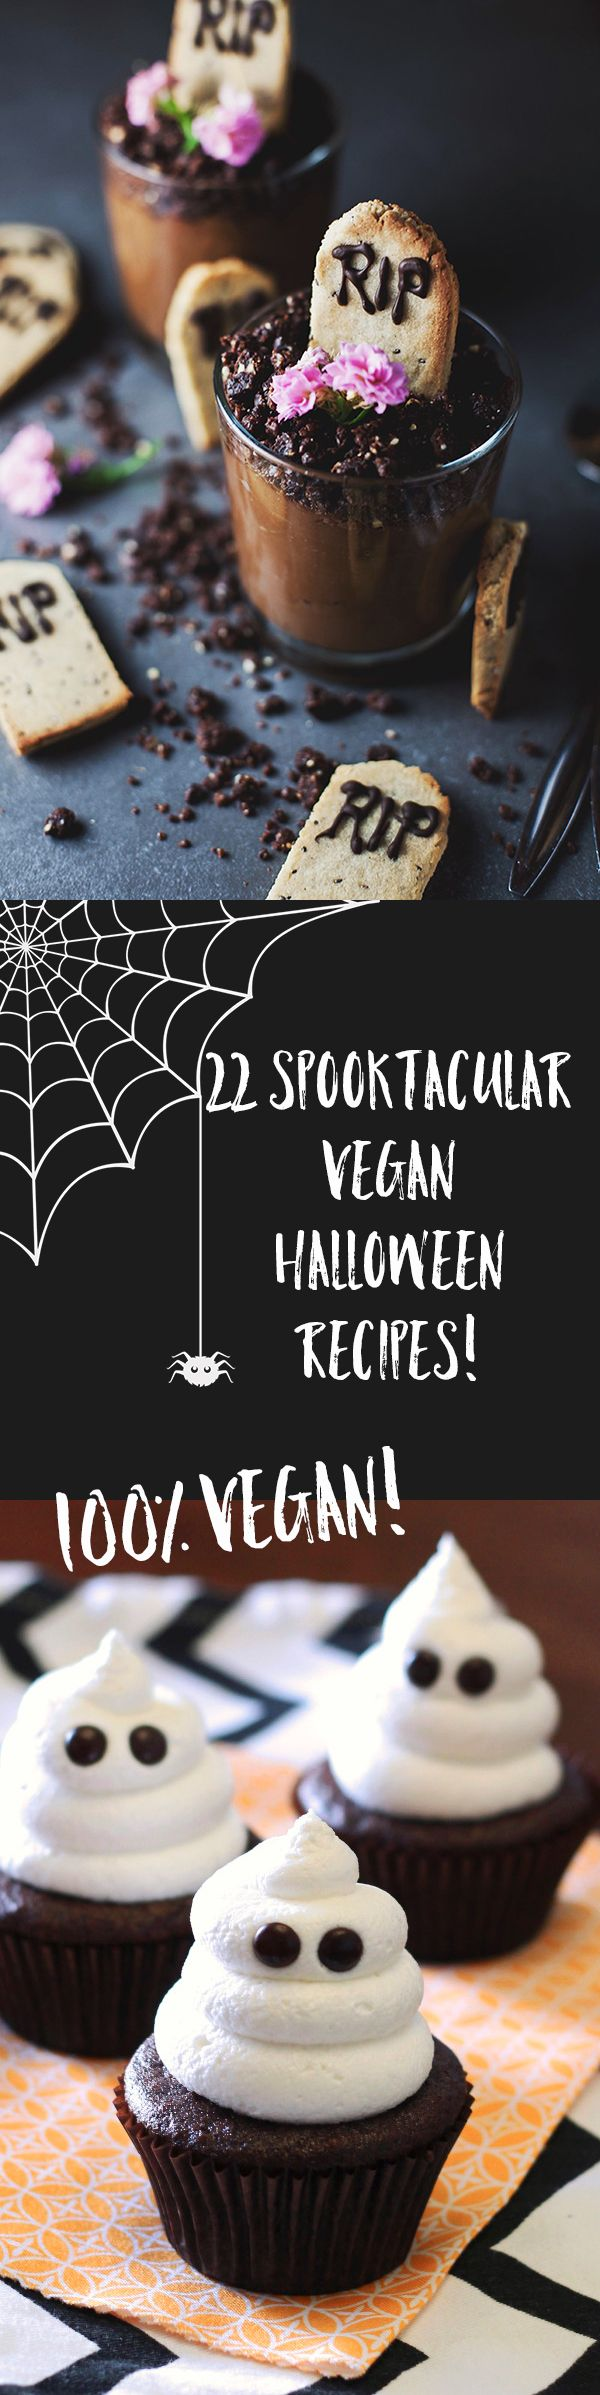 Trick or treat yourself to one of these spooktacular #vegan Halloween recipes!